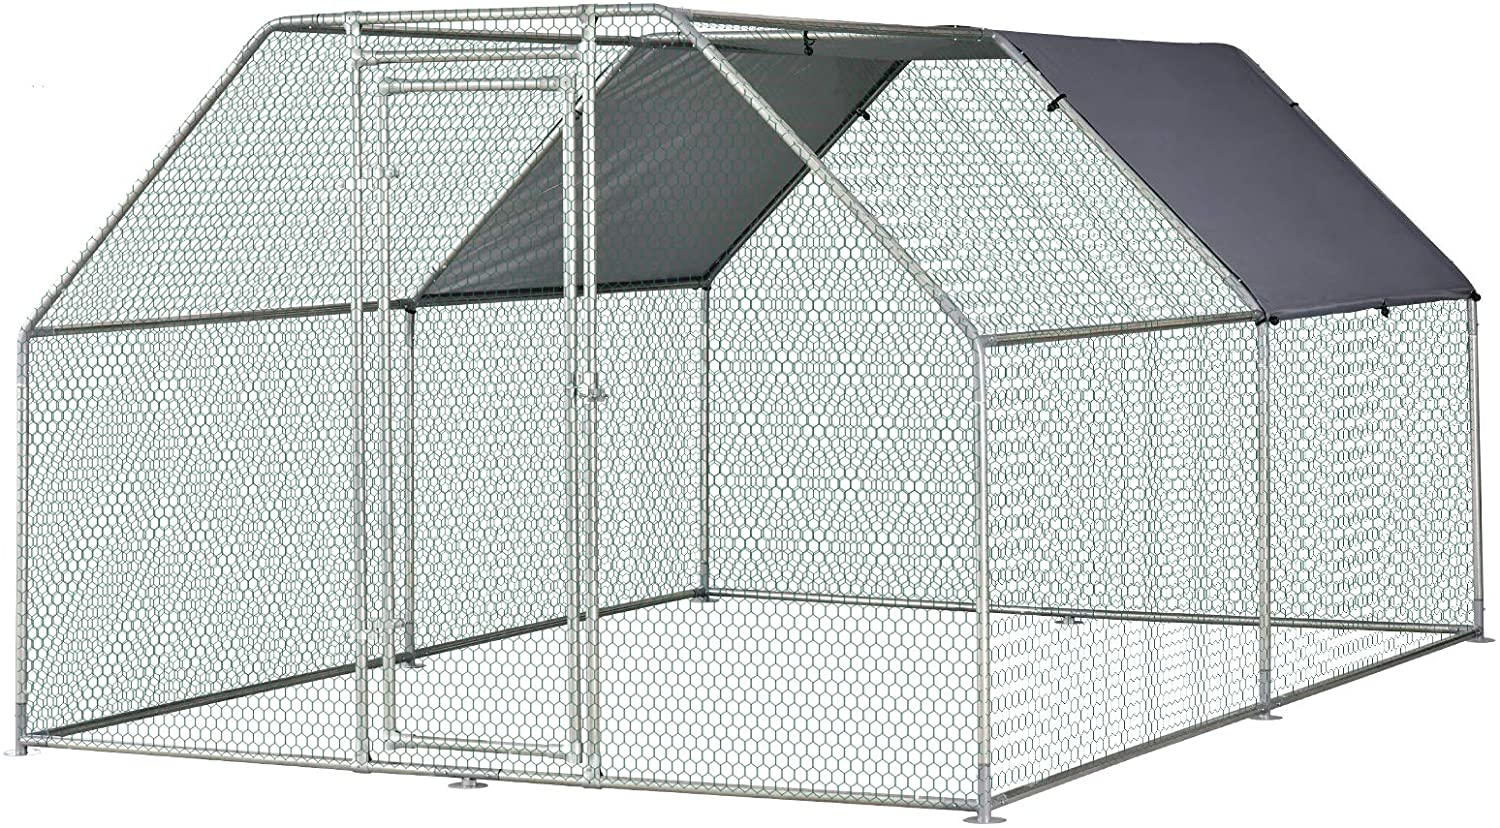 PawHut Galvanized Metal Chicken Coop Cage with Cover - The Best Walk-In Chicken Coops for Your Flock